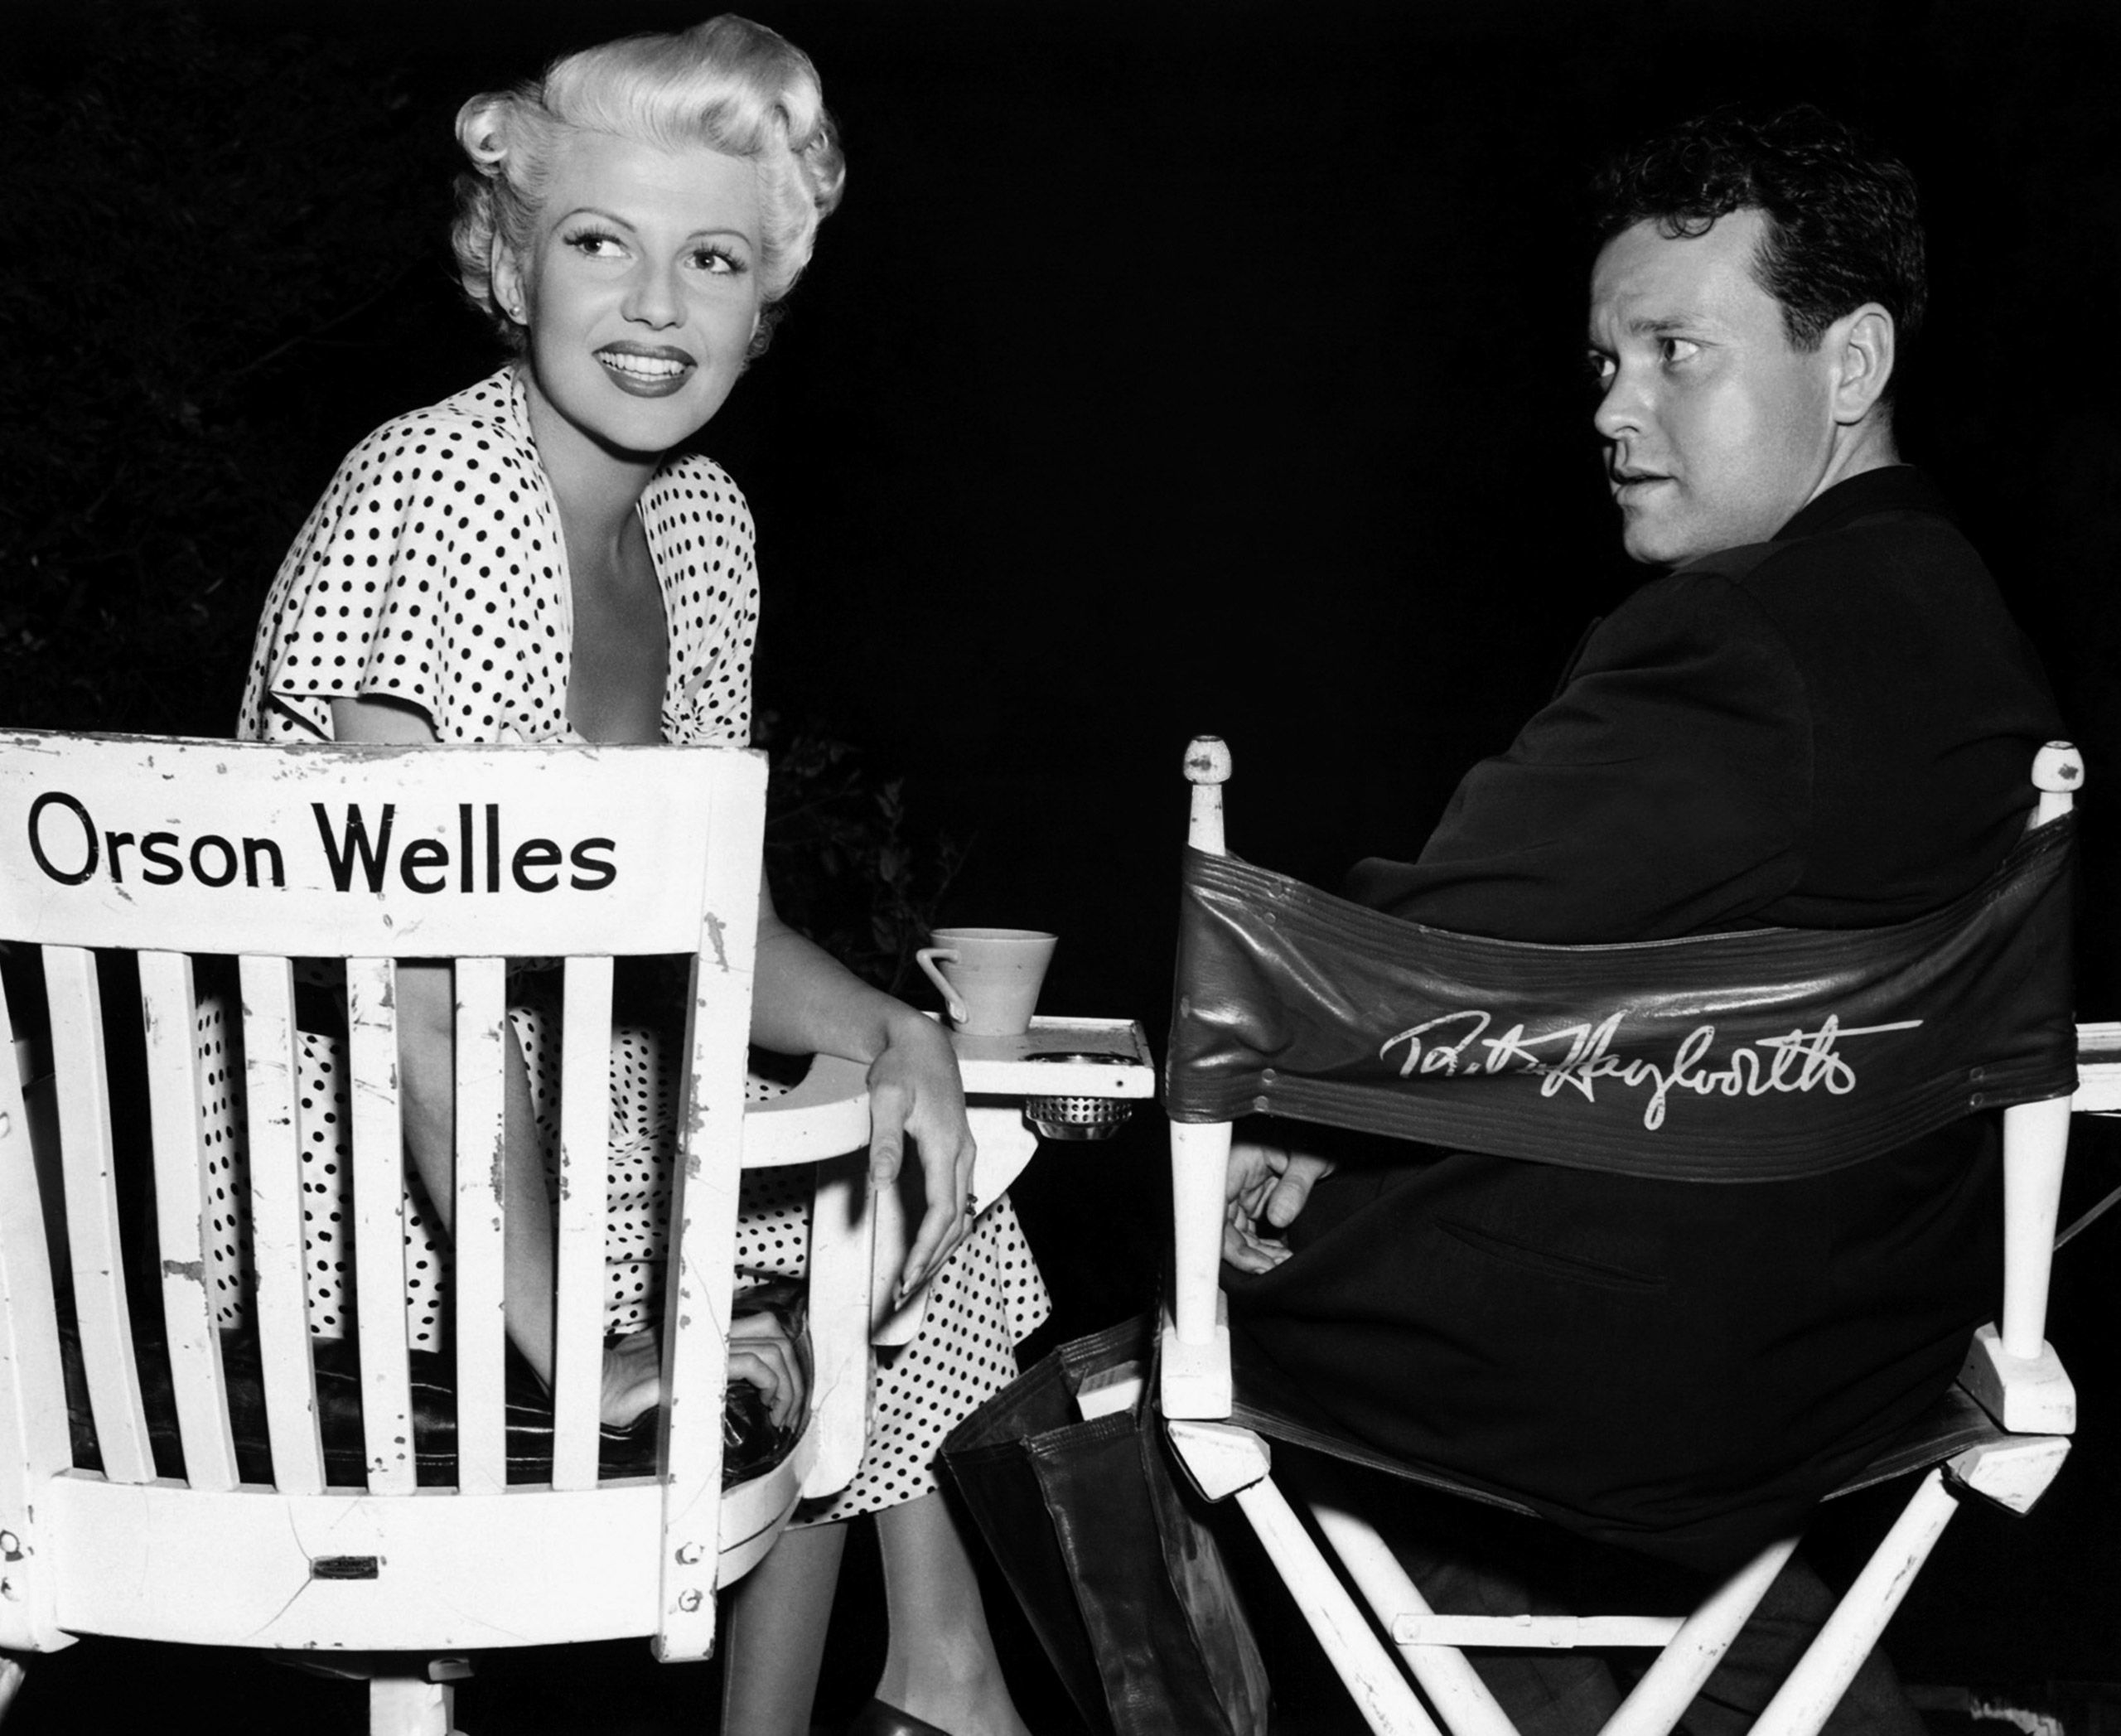 Actor, producer, writer and director Orson Welles poses with actress and wife Rita Hayworth on the set of the Columbia Pictures film 'The Lady from Shanghai' in 1947 in Los Angeles.